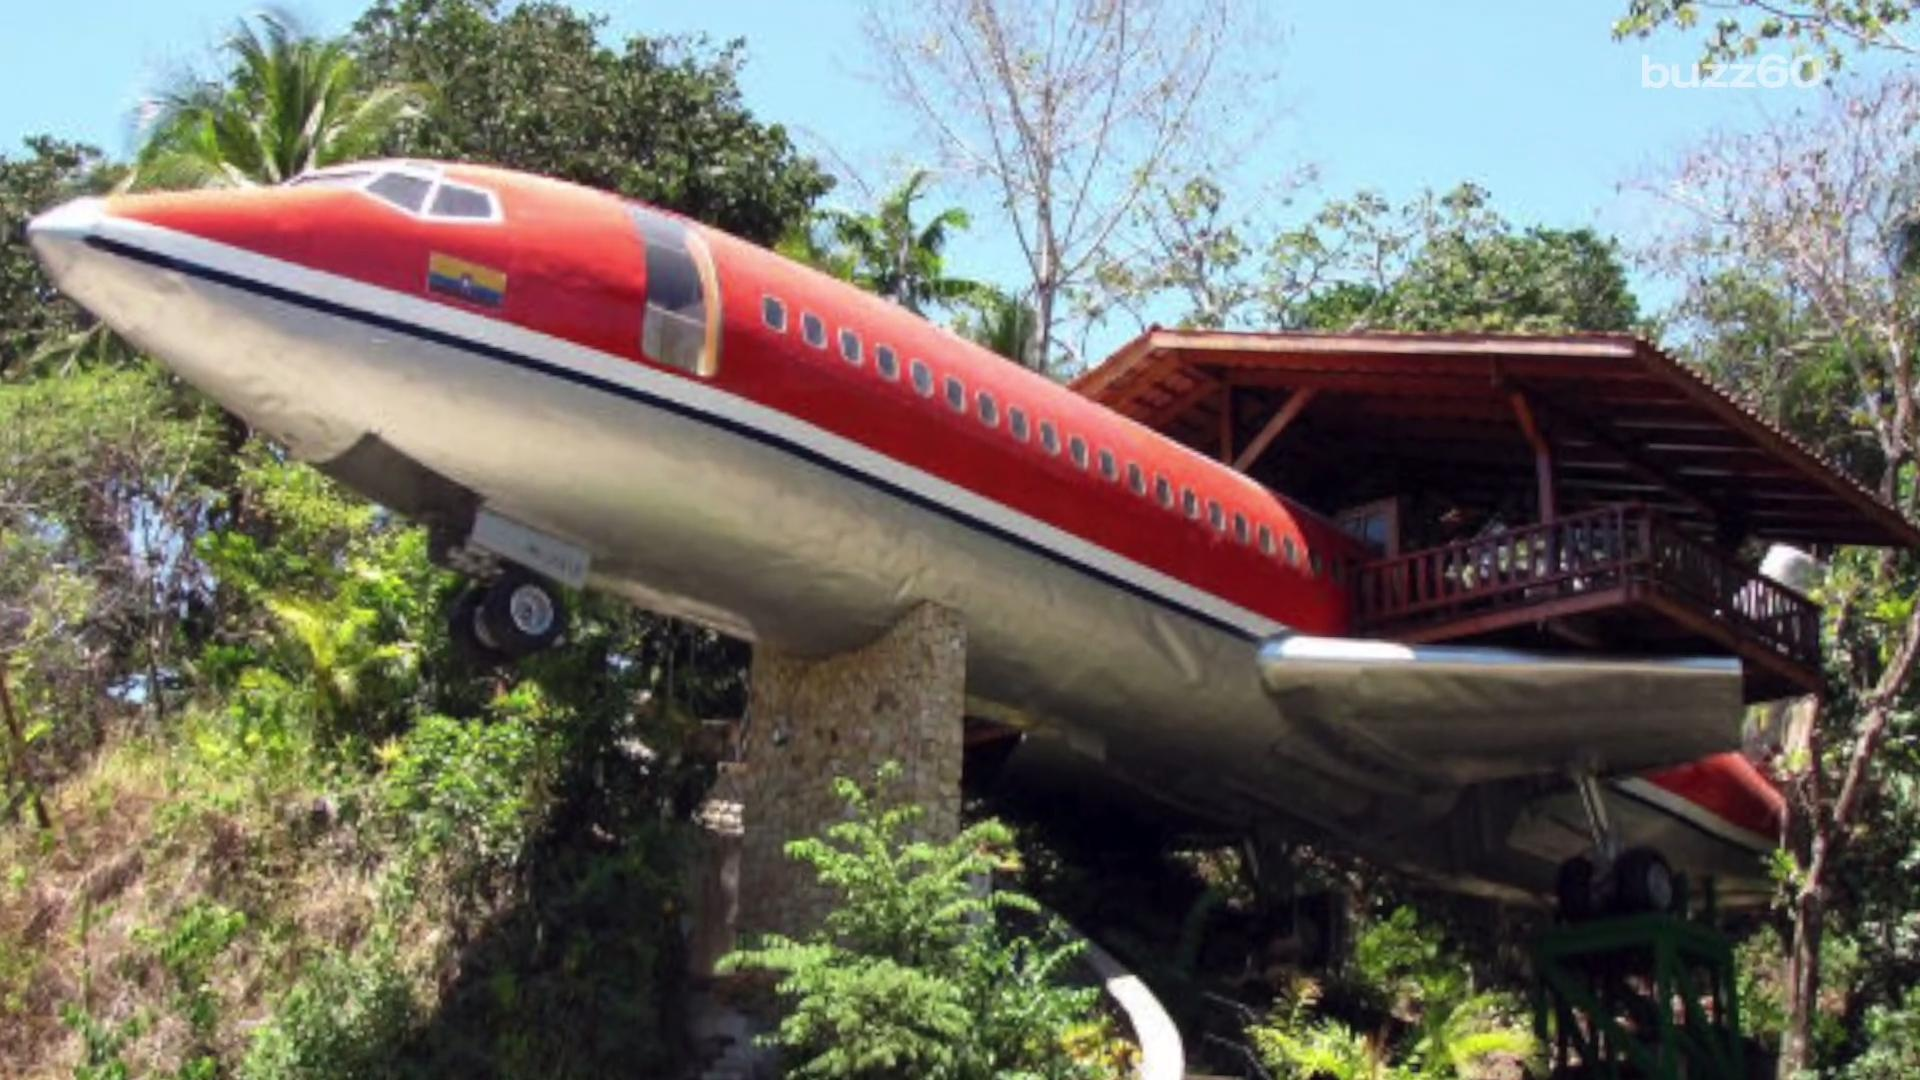 Stay in This Airplane Turned into a Hotel in Costa Rica